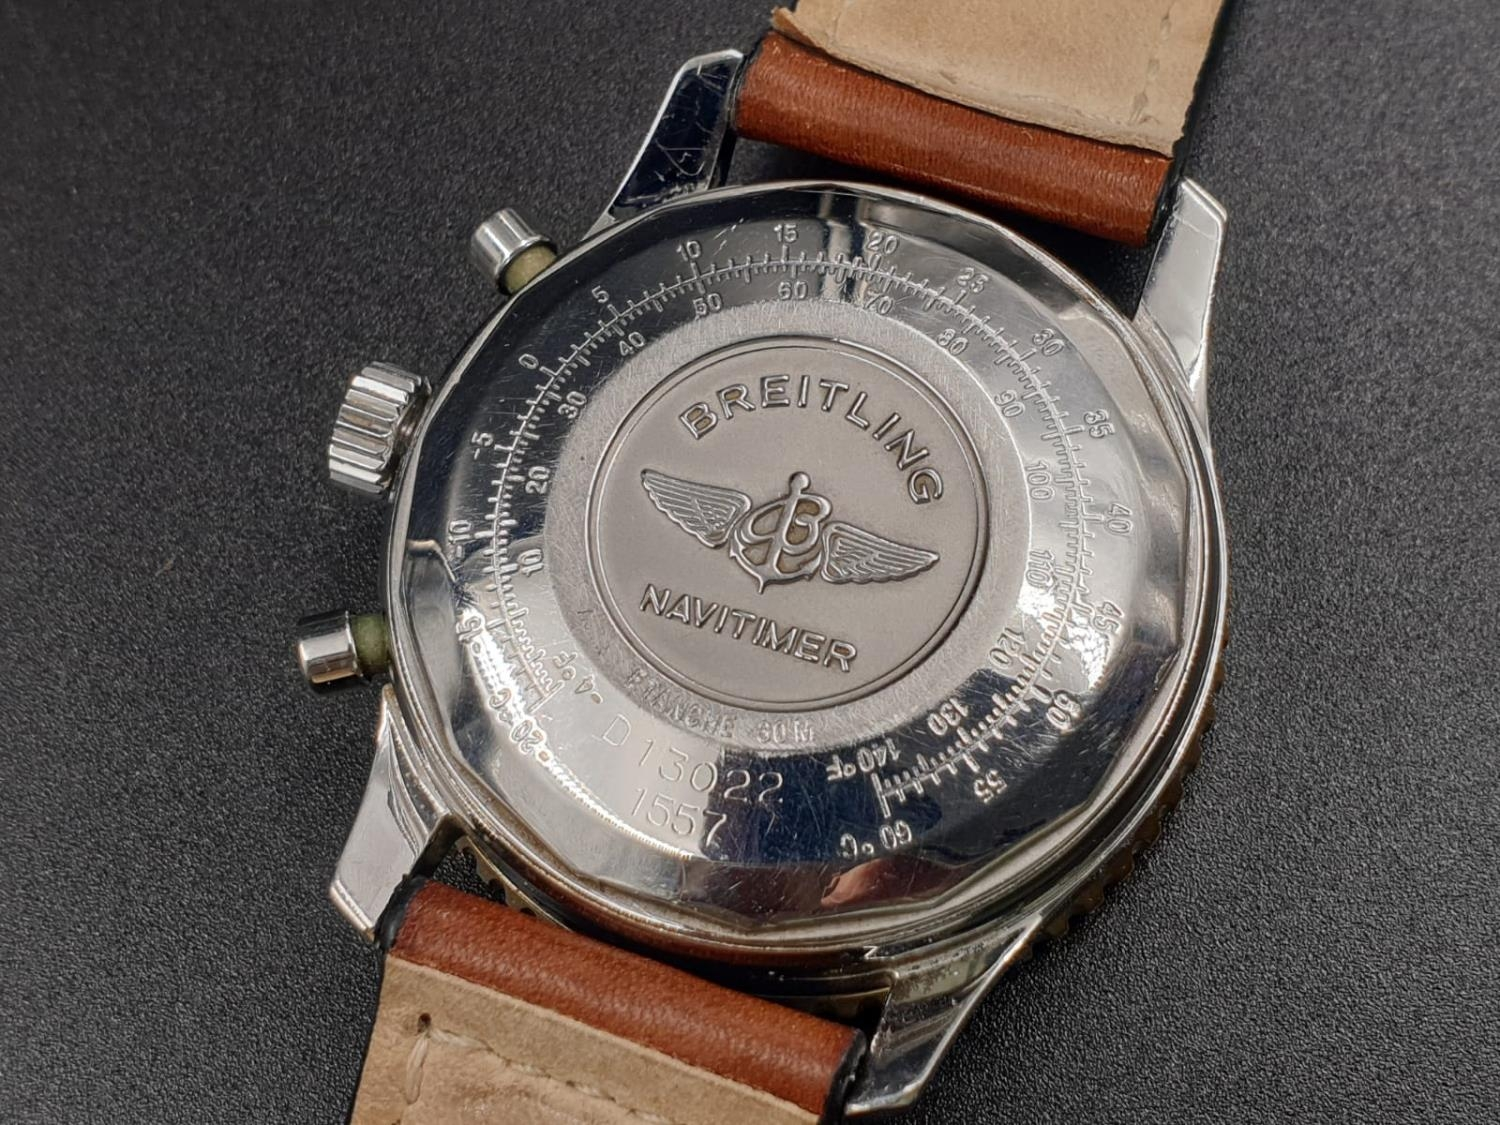 A BREITLING NAVITIMER CHRONOMETER AUTOMATIC MOVEMENT ON A LEATHER STRAP. 42mm - Image 10 of 10